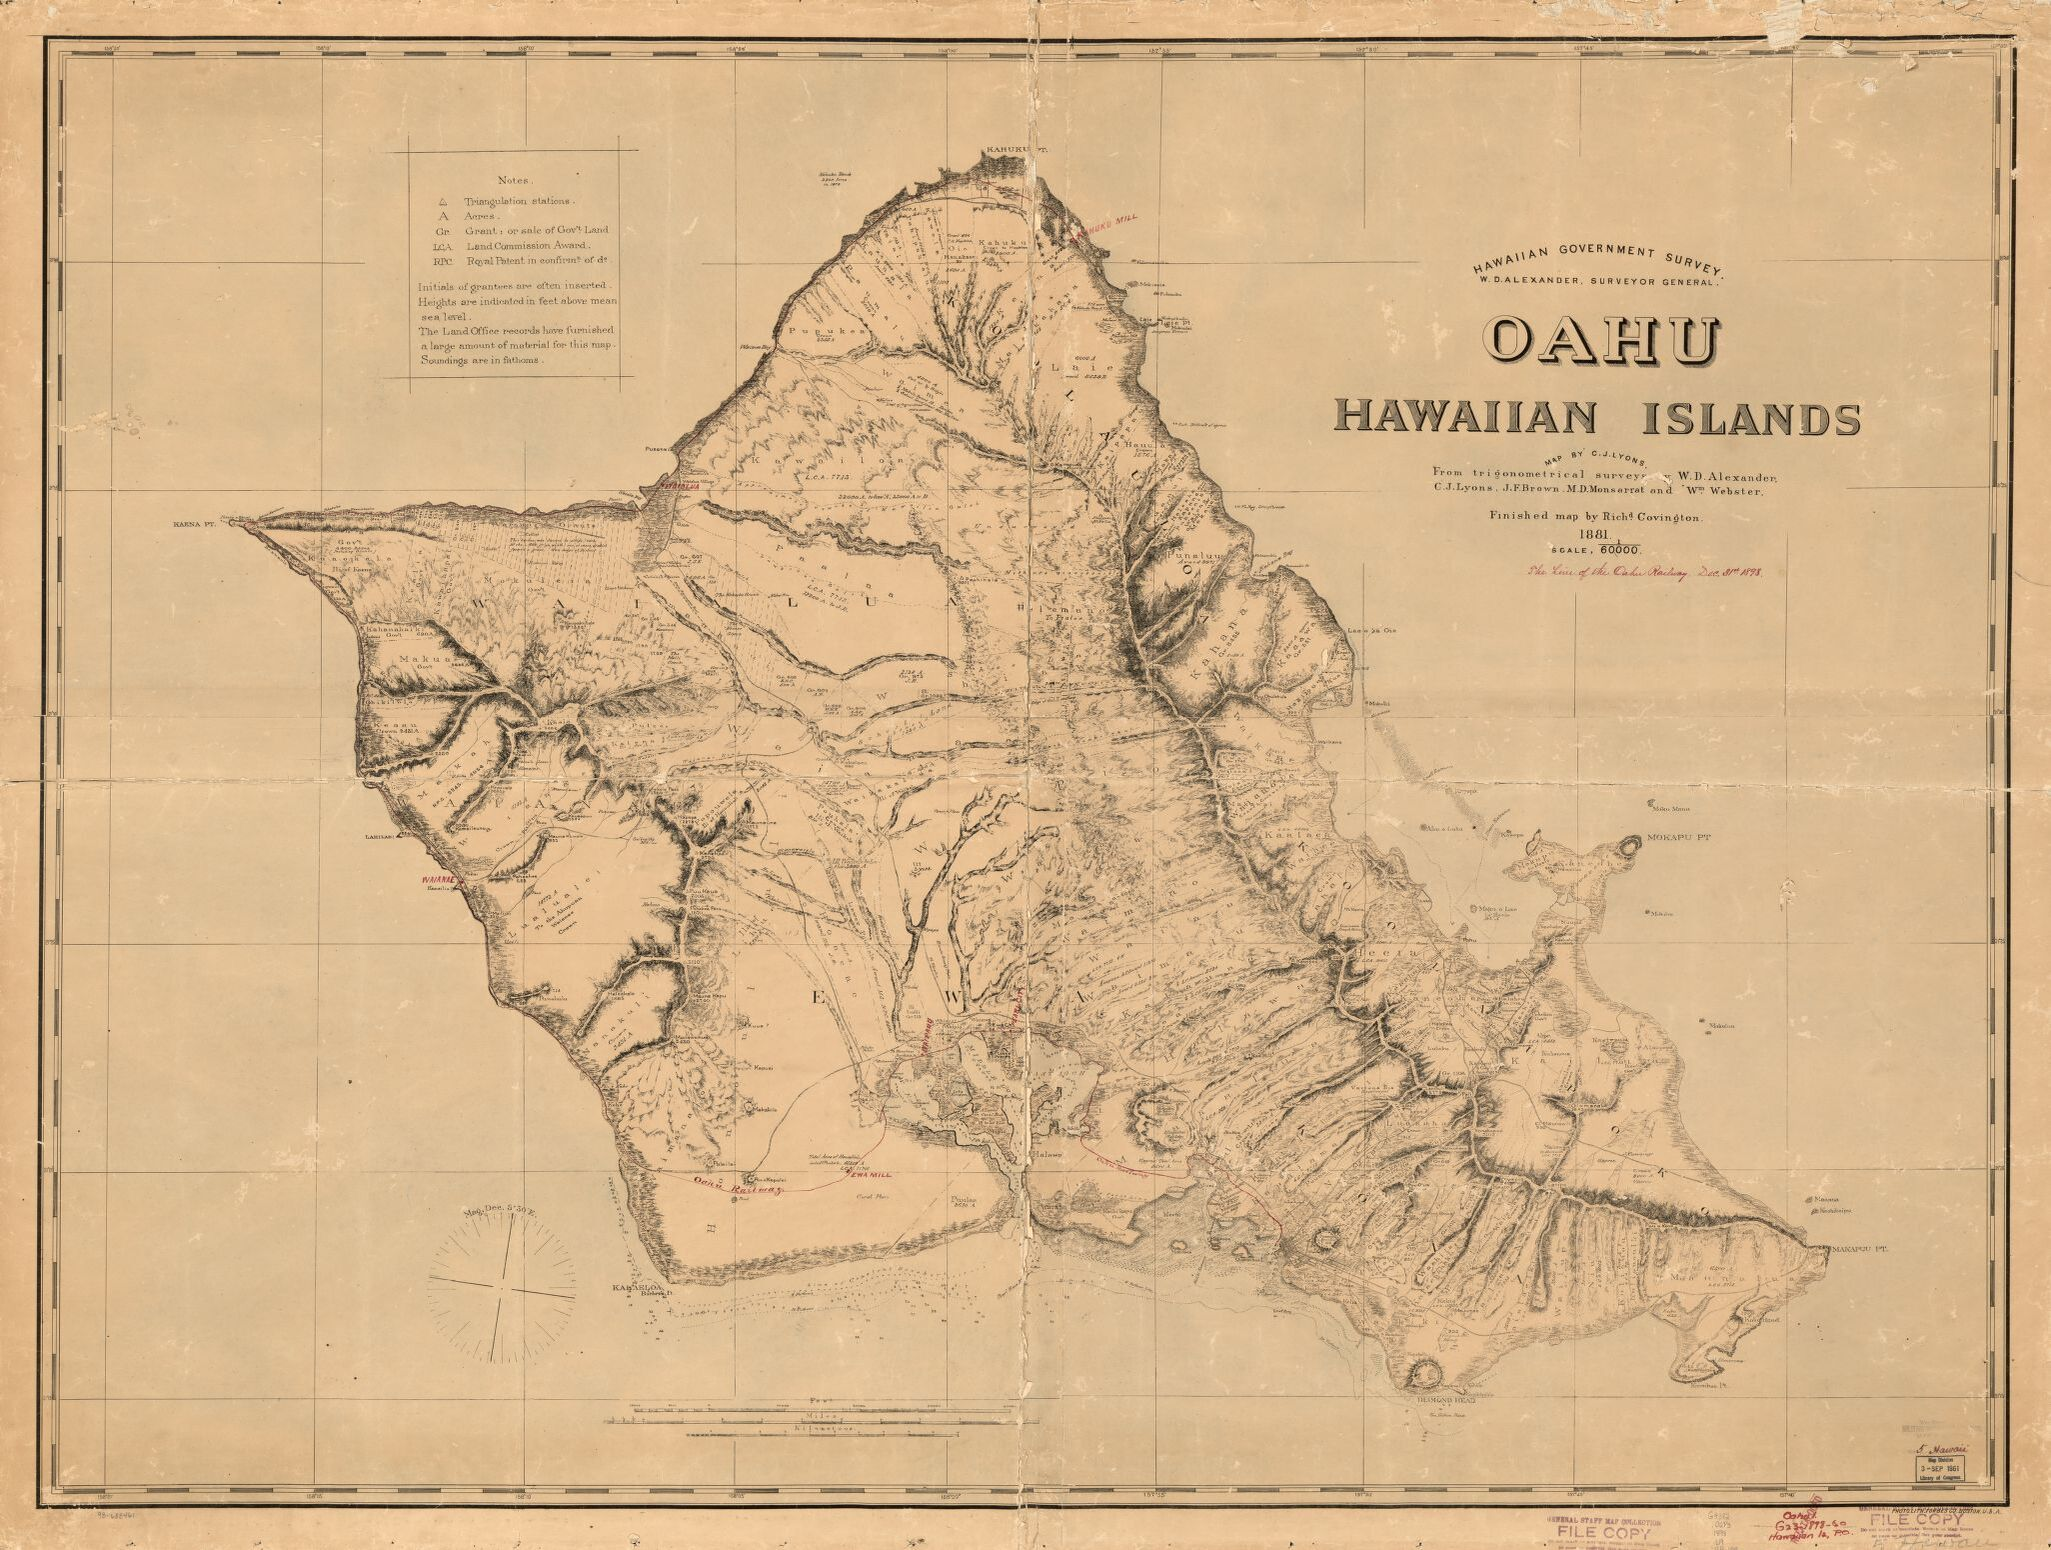 Benjamin Franklin Dillingham and the Oahu Railway and Land Company